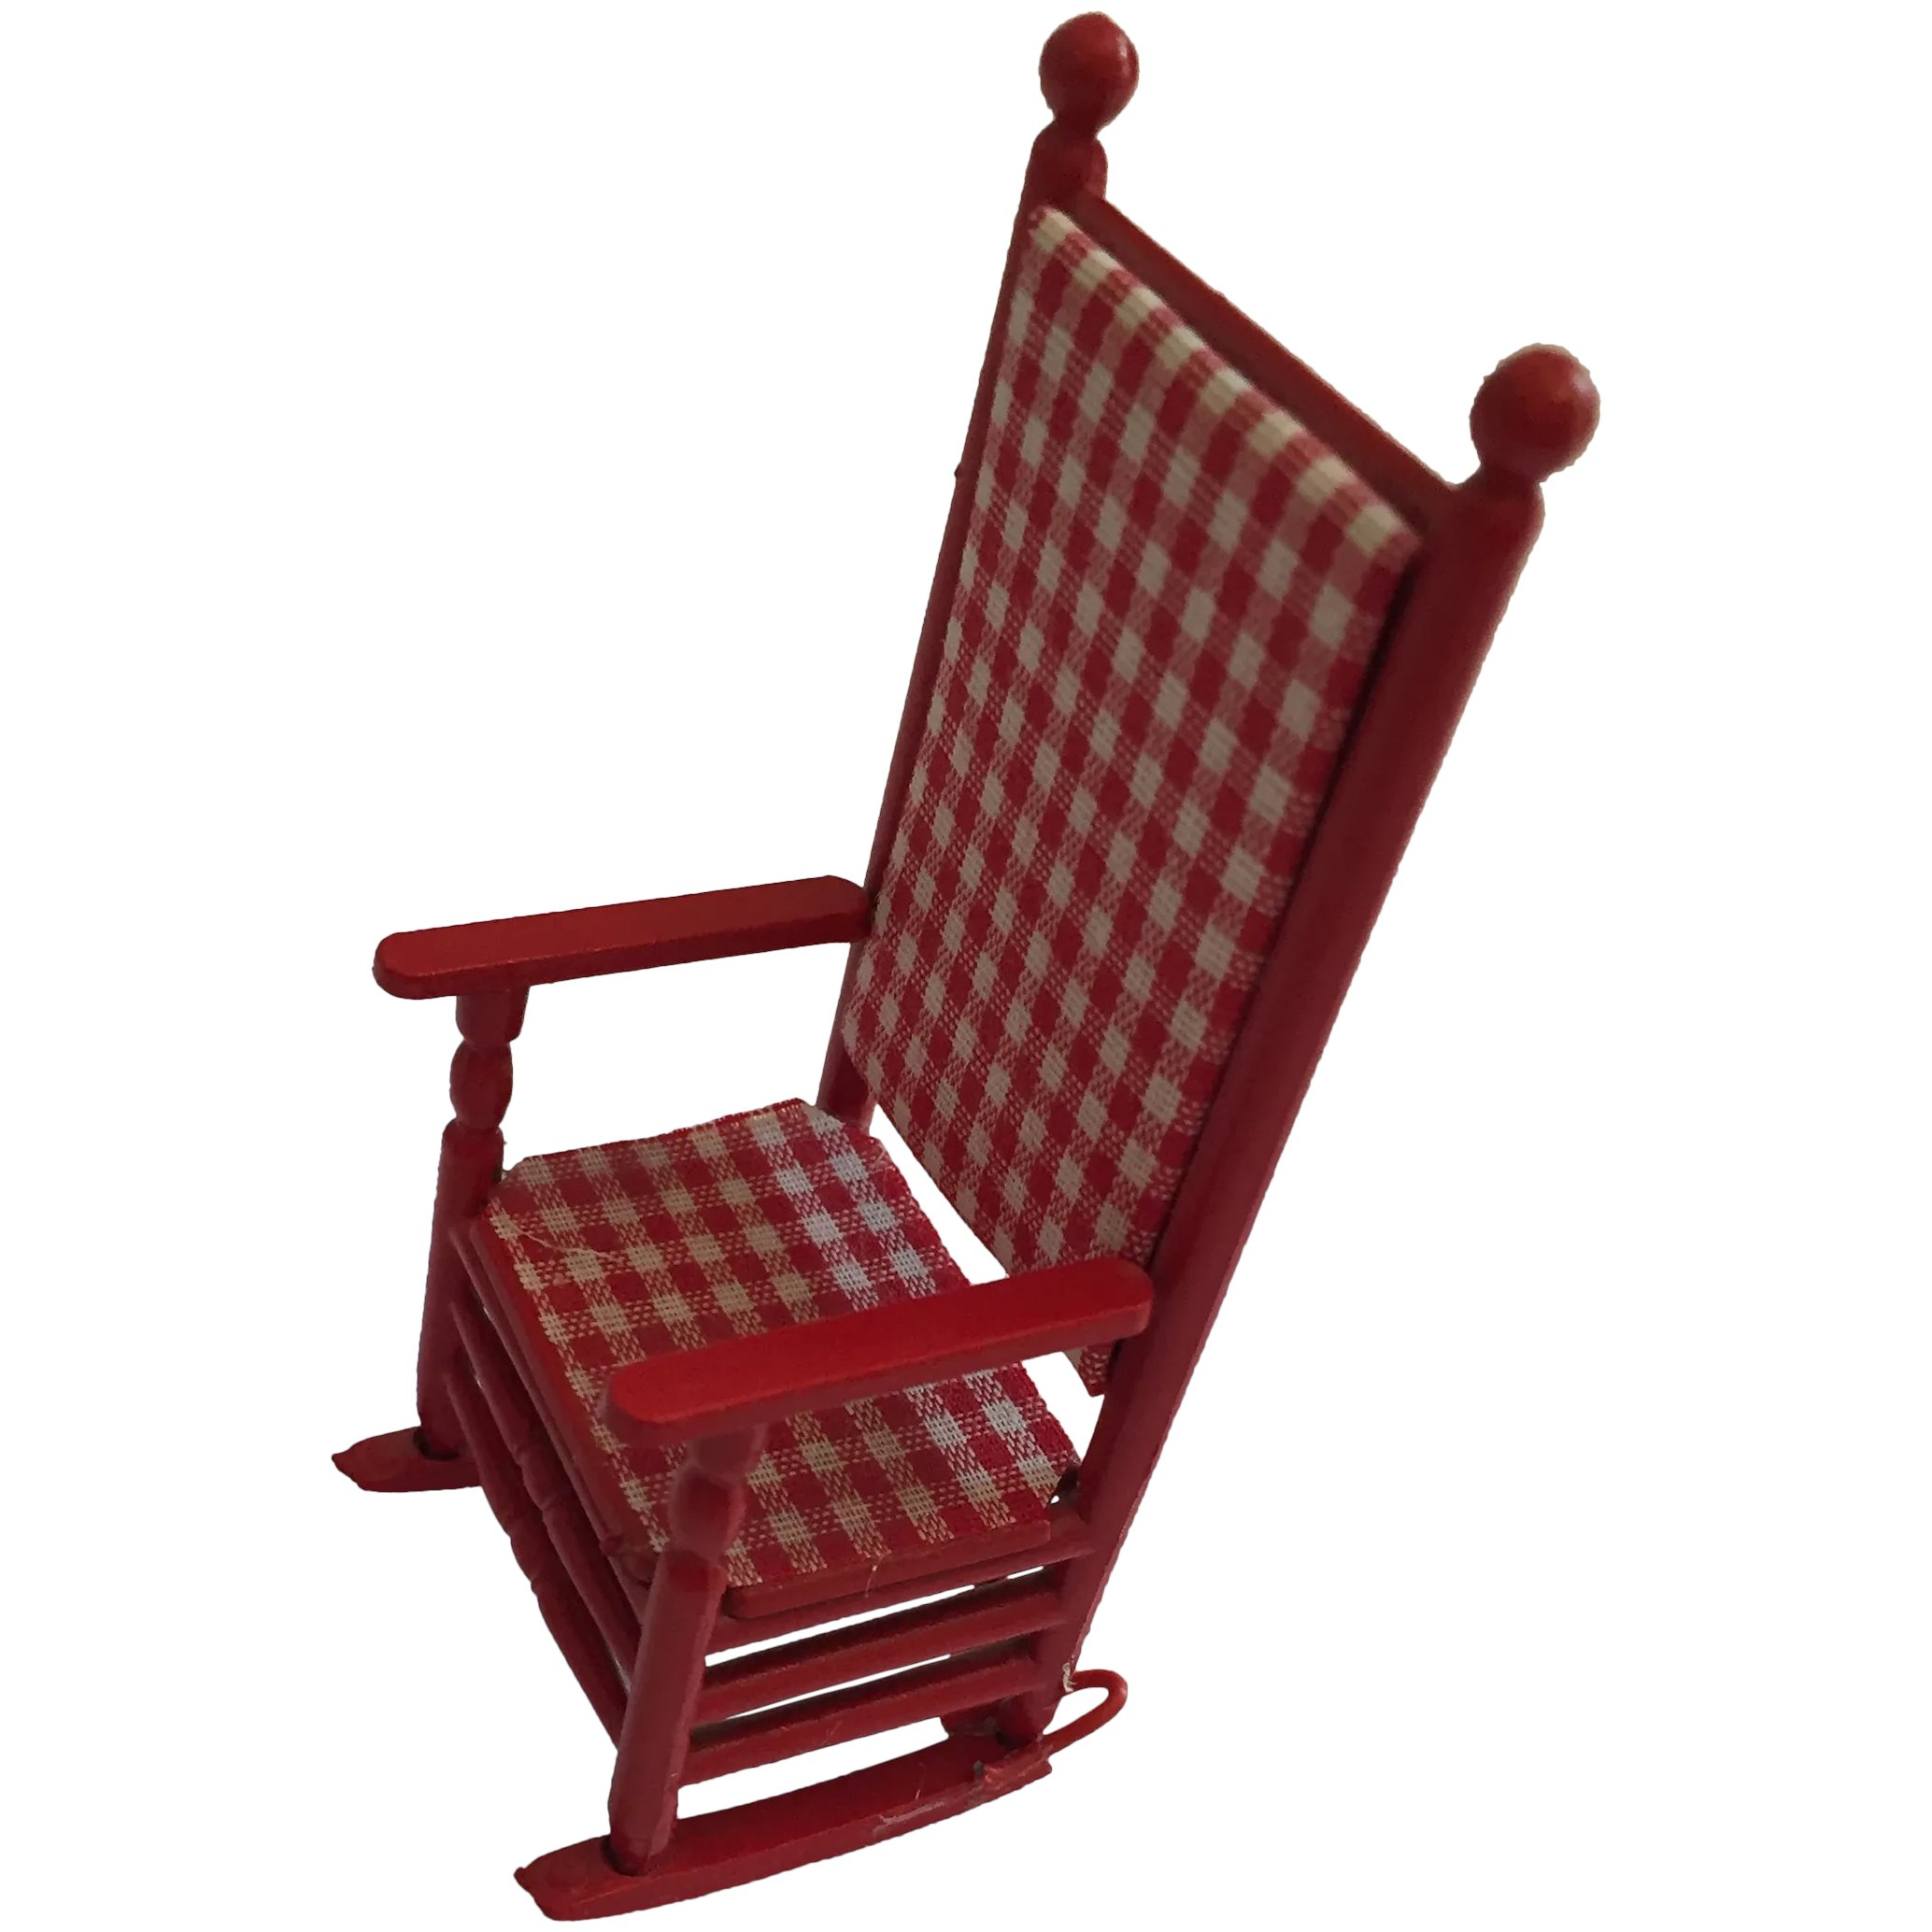 Circa 1960s Red Lacquer High Back Dollhouse Rocking Chair